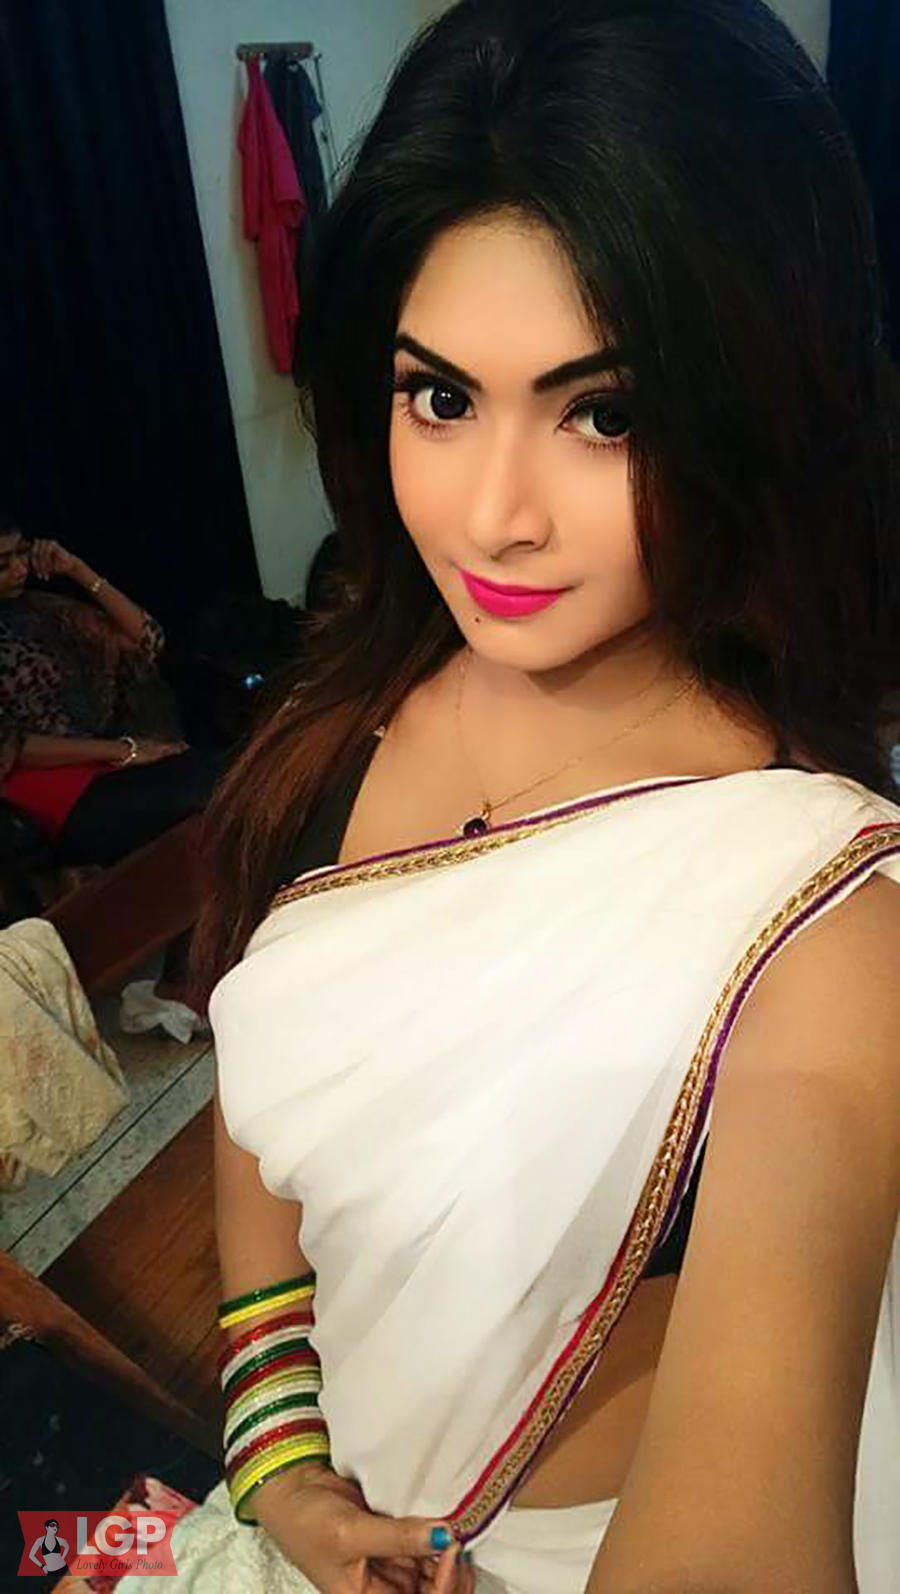 Bangladeshi sexy model picture